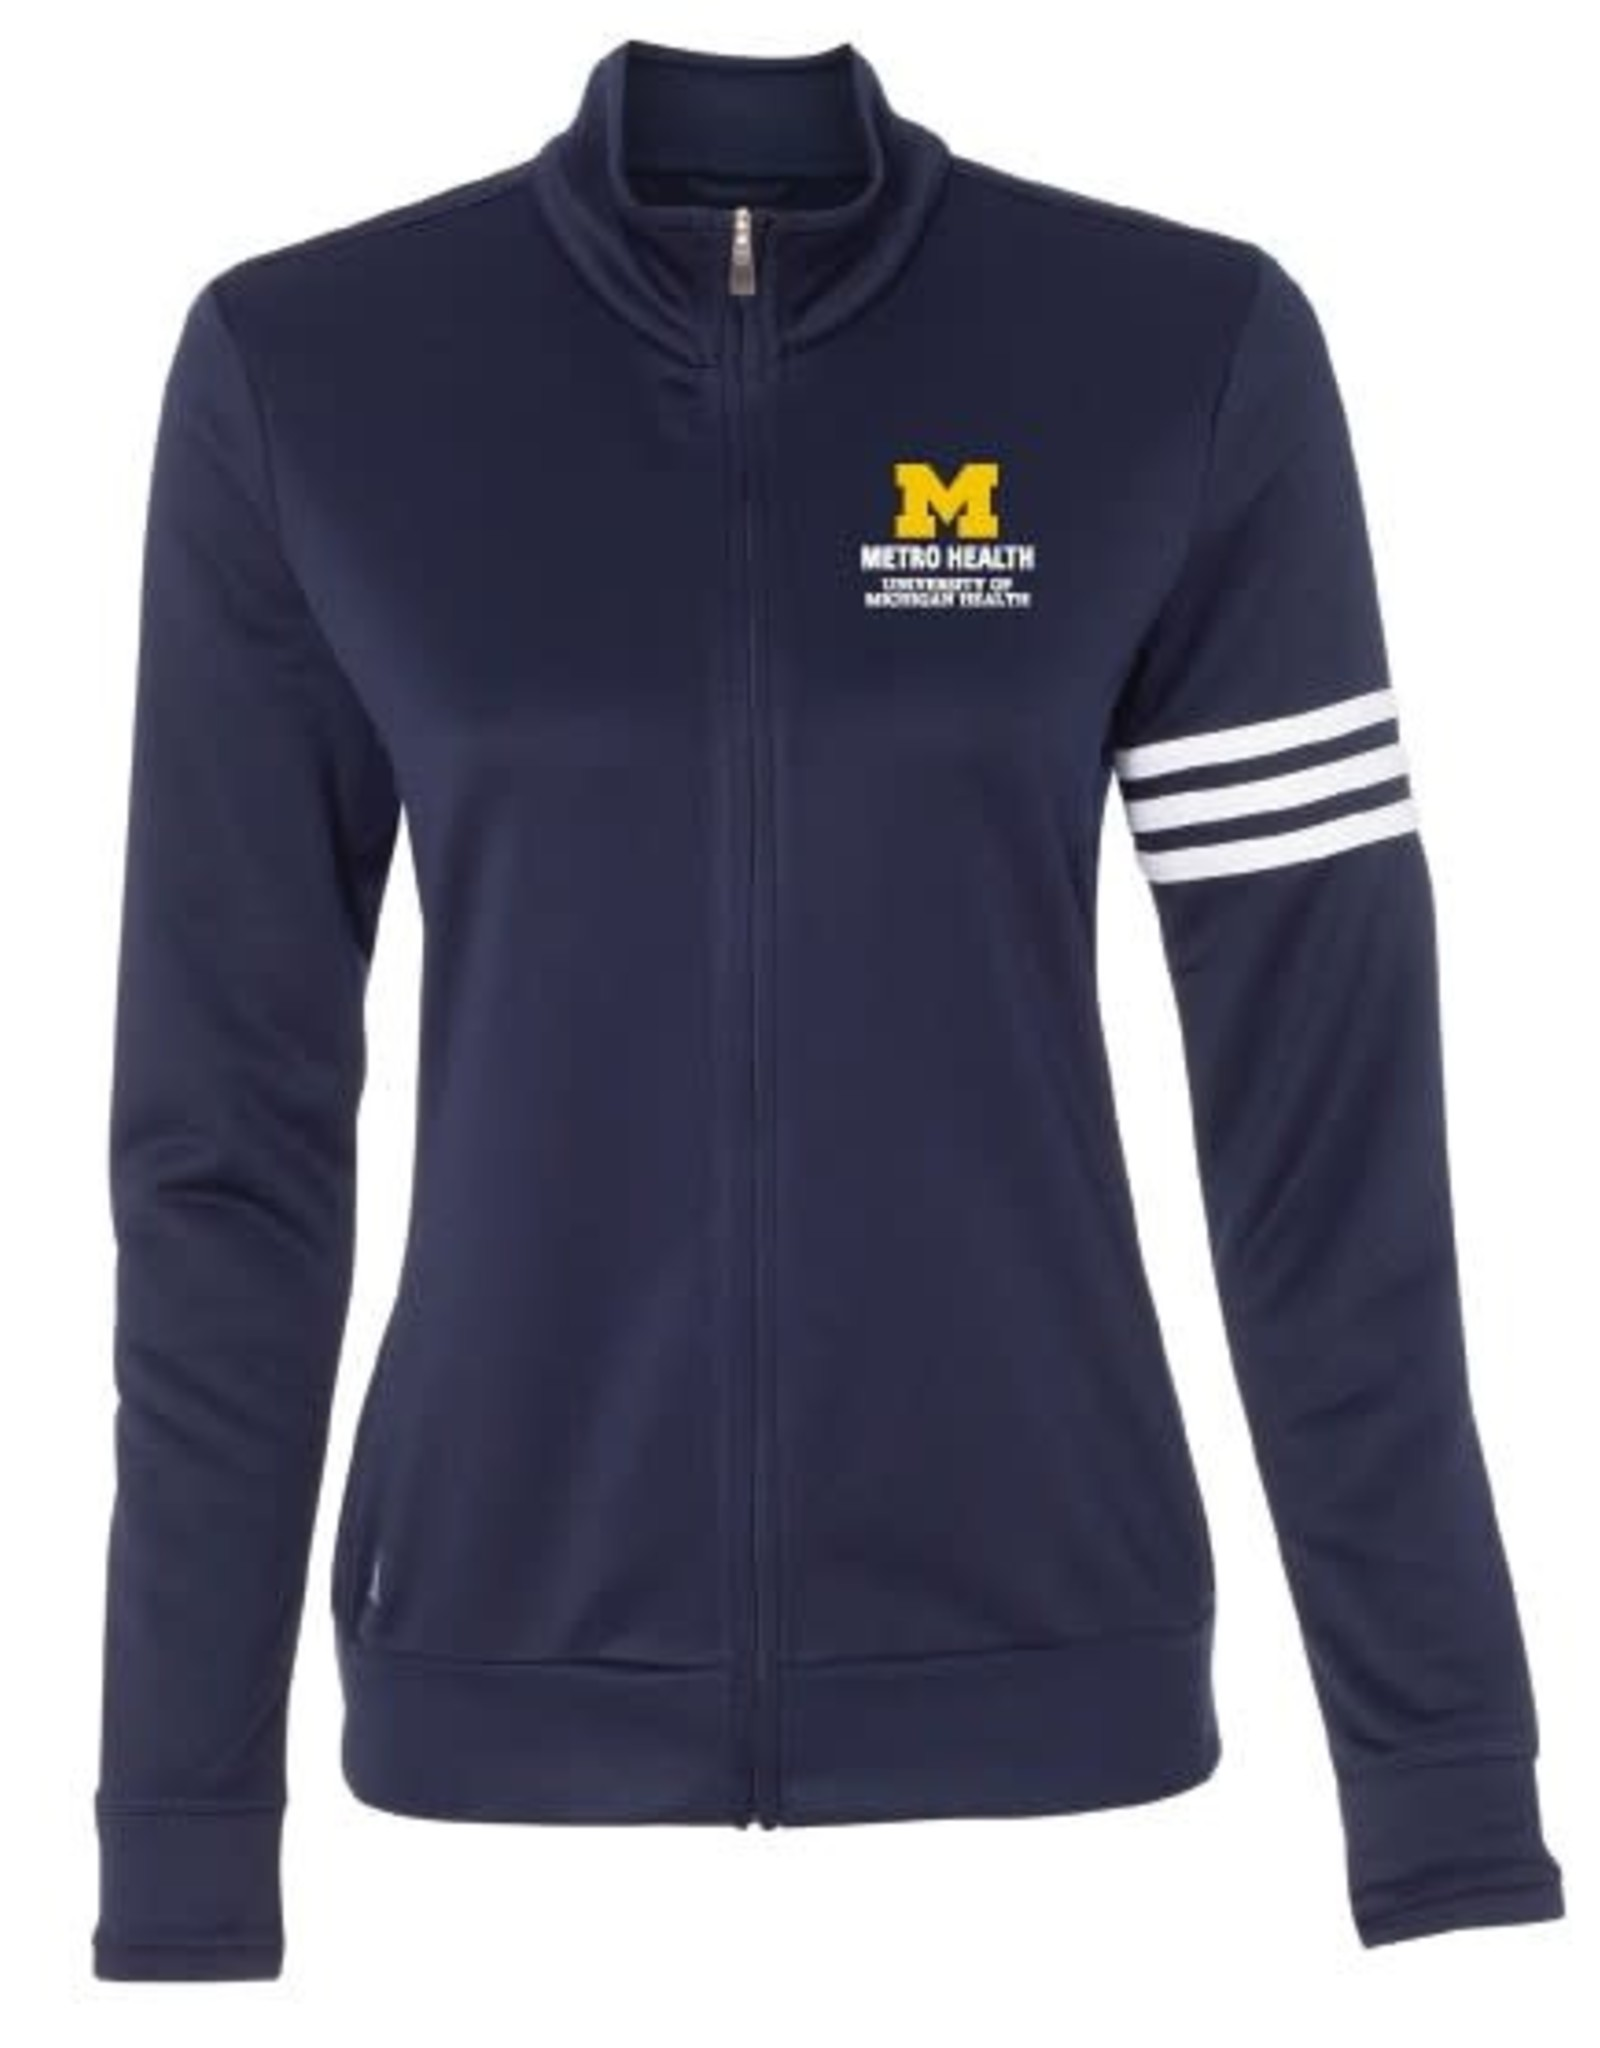 Women's Adidas French Terry Jacket